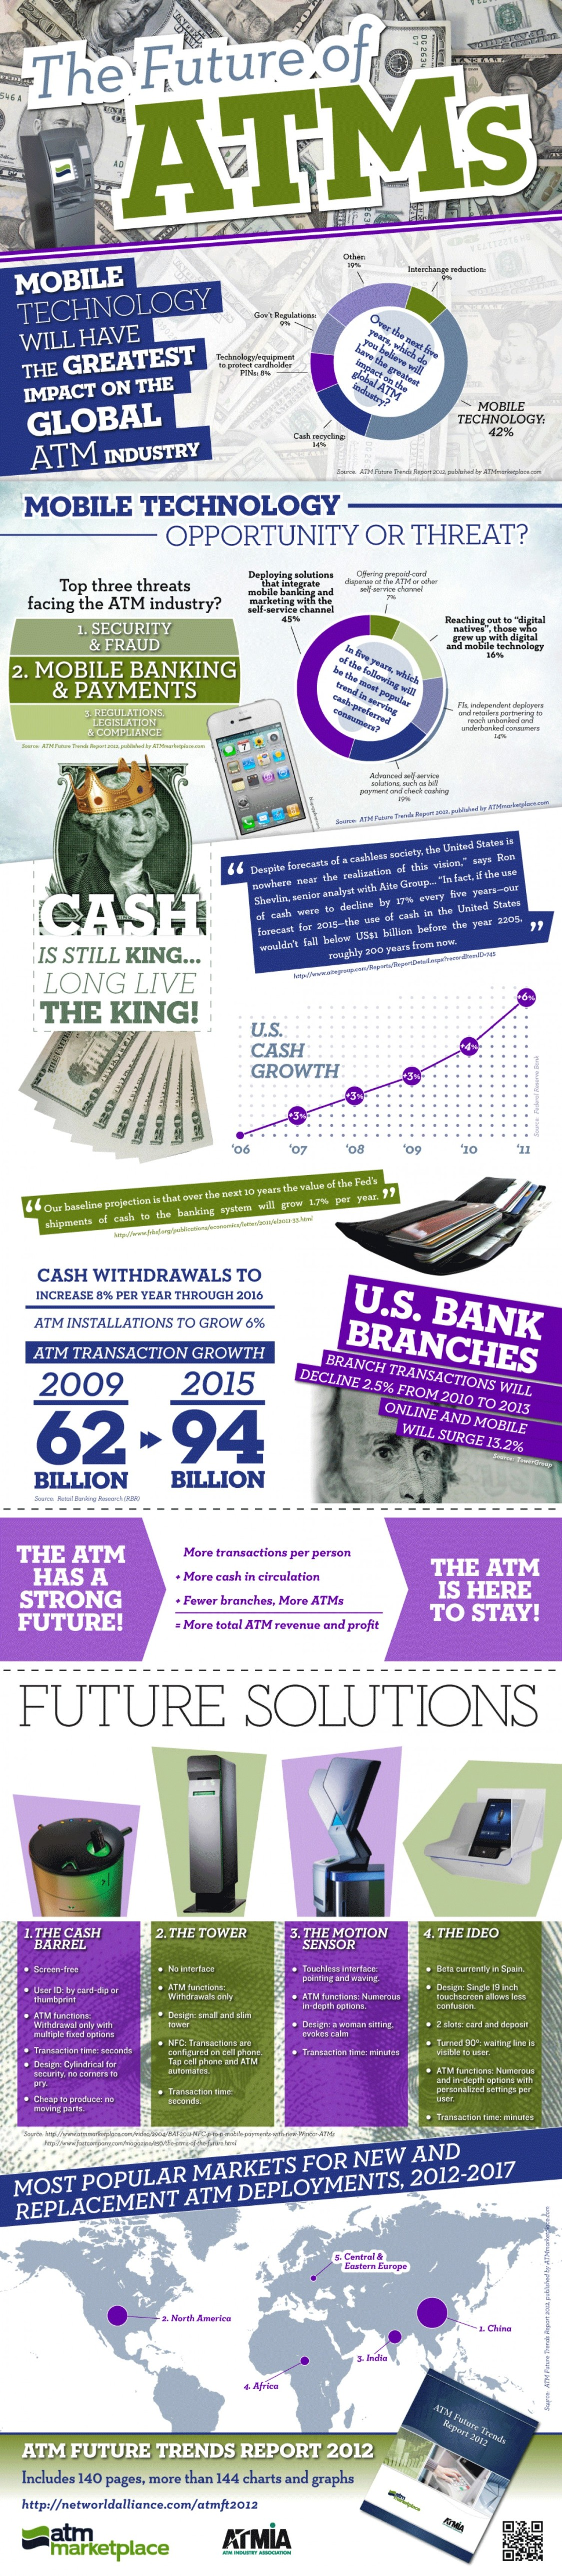 The future of ATMs